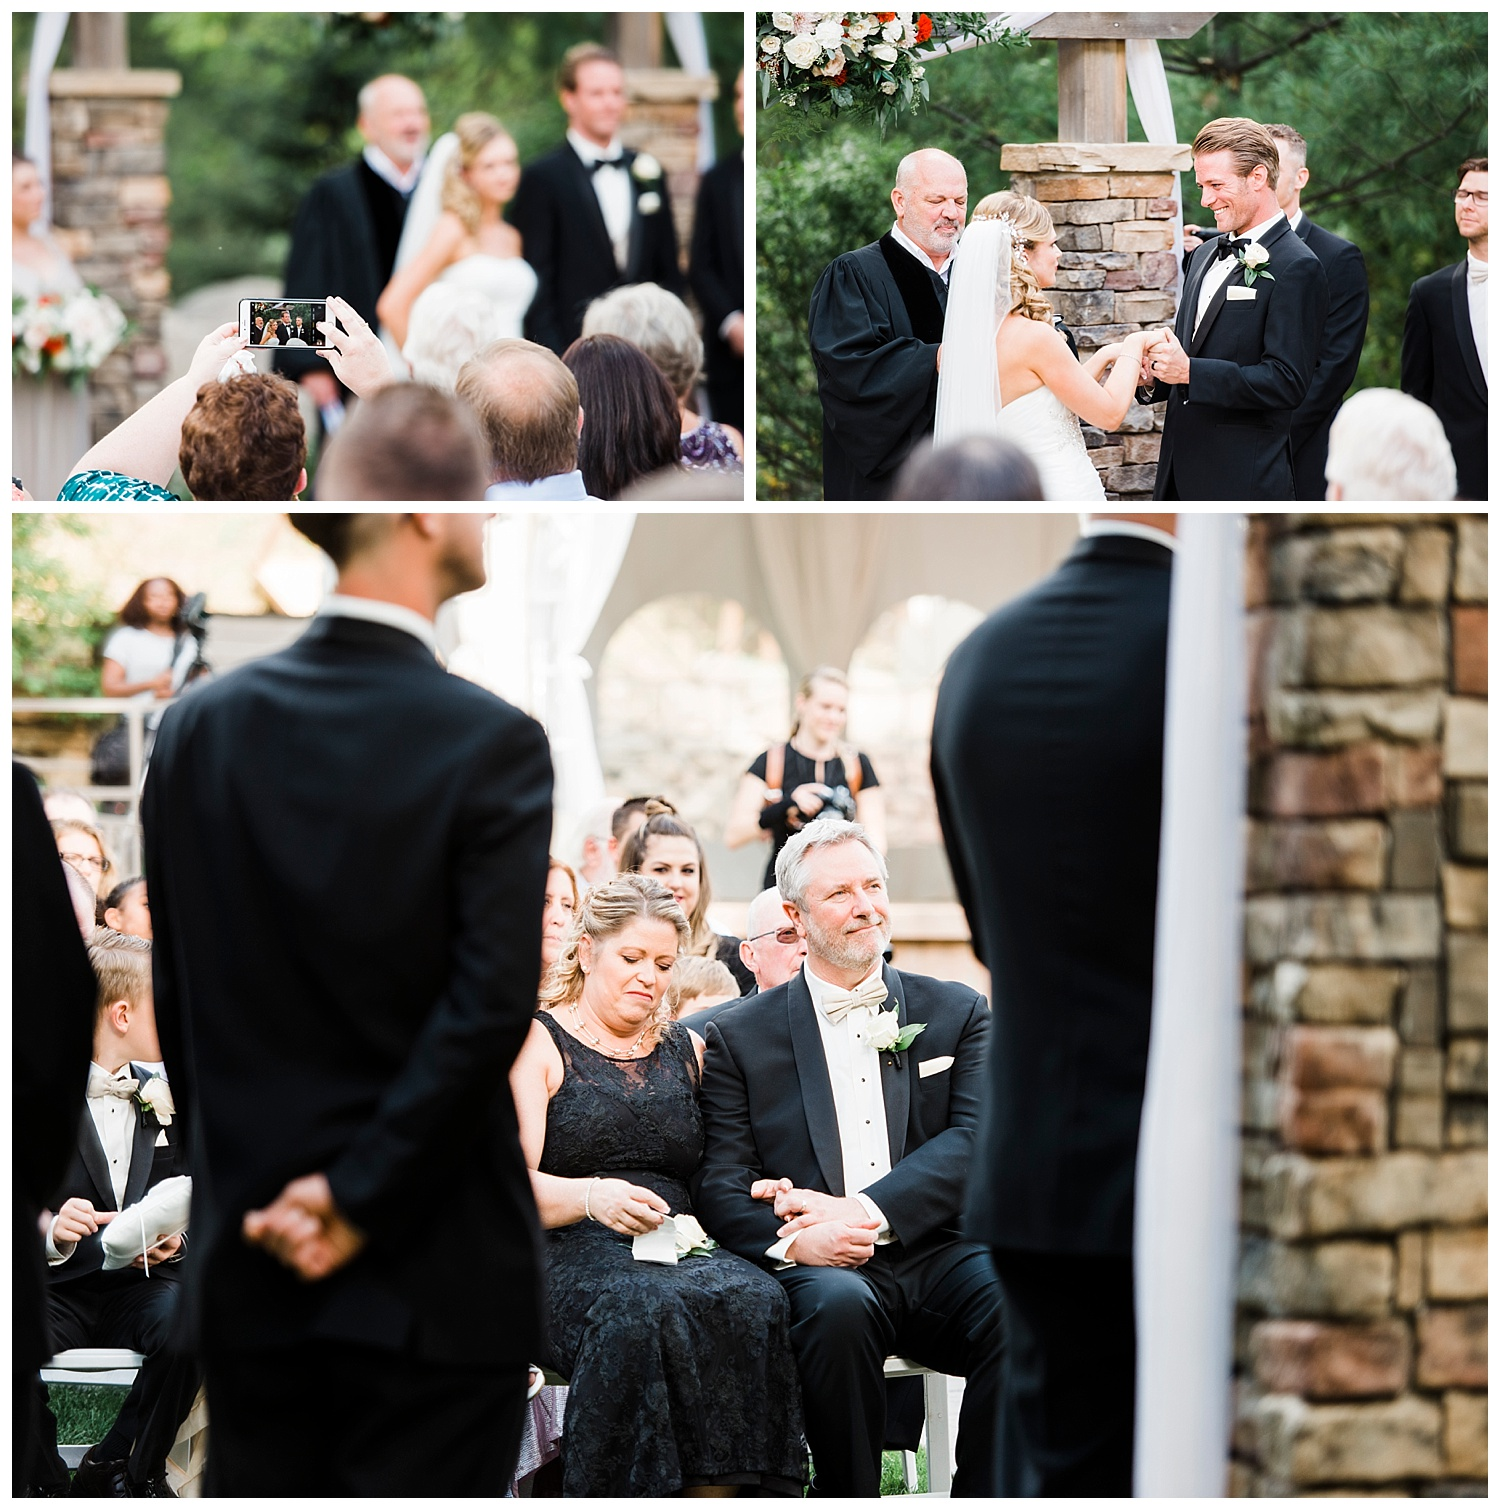 Wedgewood_Boulder_Creek_Wedding_Venue_Colorado_Photographer_Apollo_Fields_040.jpg